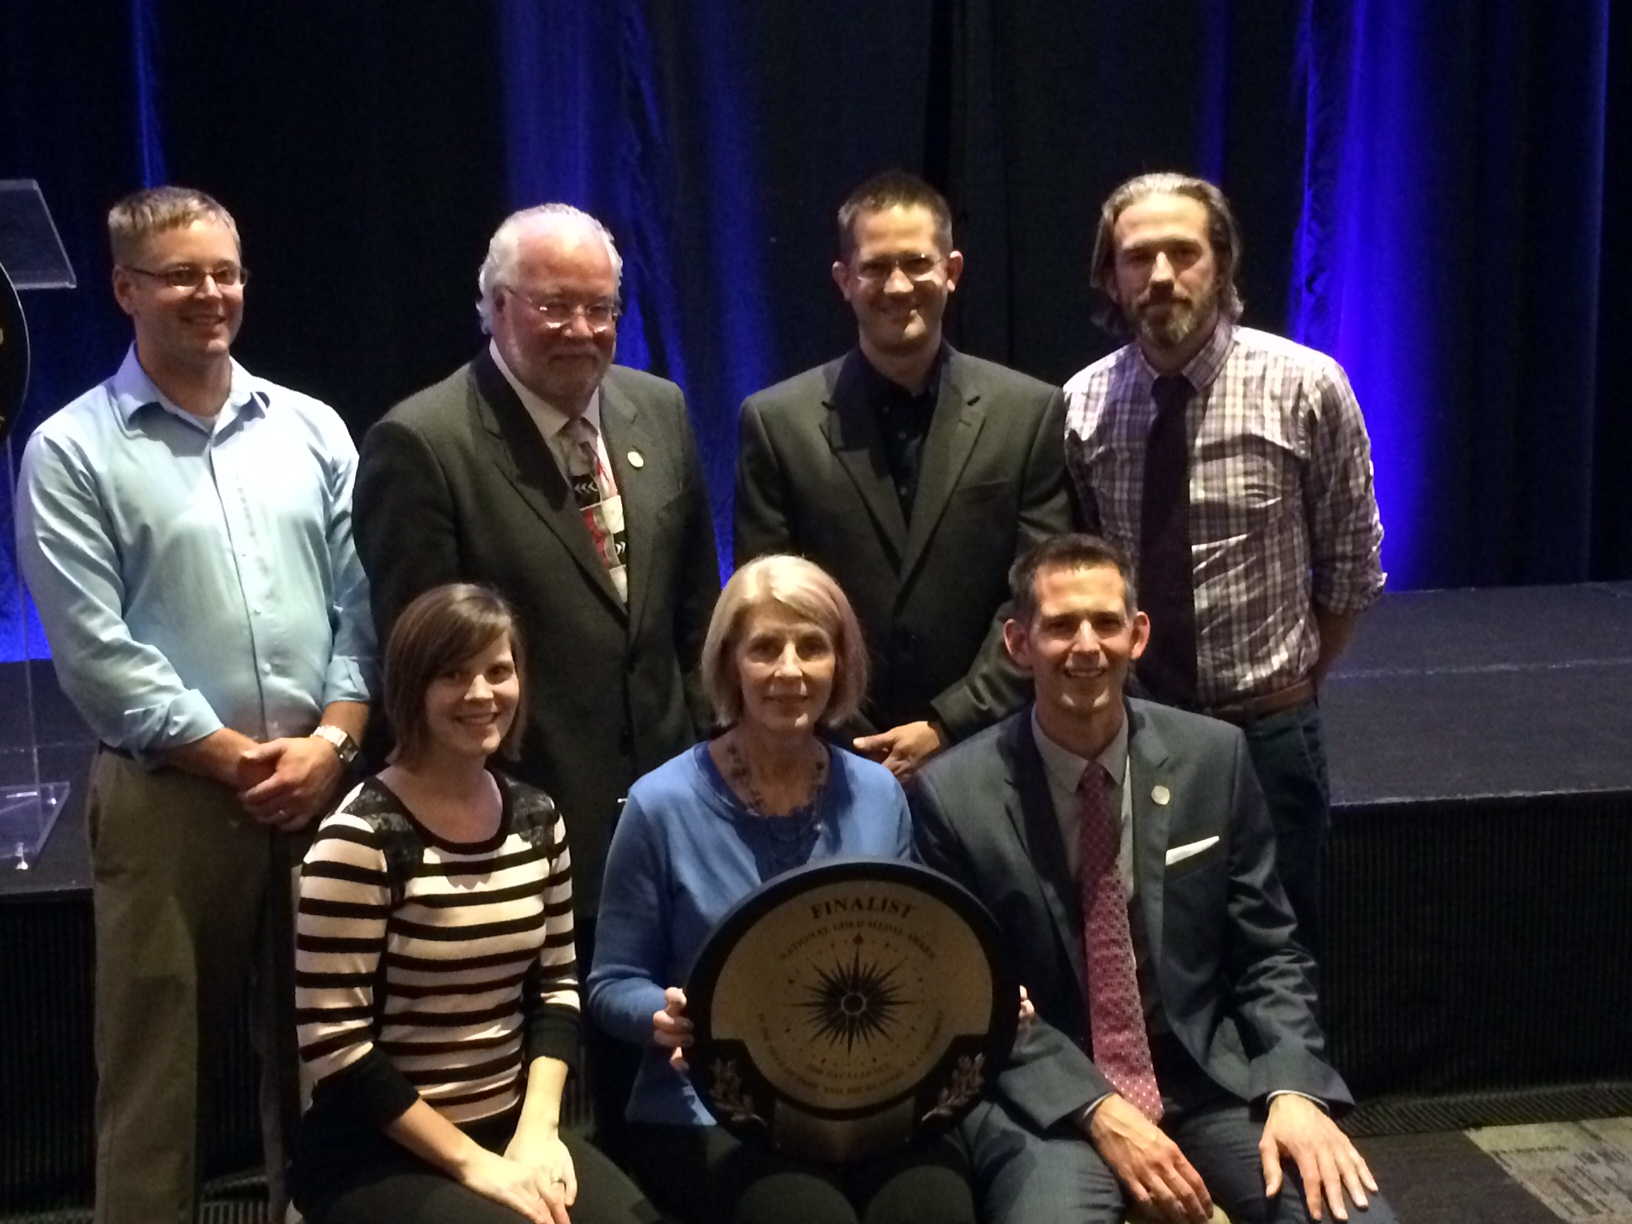 Senior staff members of the Carmel Clay Parks & Recreation department hold their gold medal. The group was in North Carolina this week to attend the 2014 National Recreation and Park Association Congress. Pictured here are (back row, left to right) Ben Johnson, Mark Westermeier, Kurtis Baumgartner, Eric Mehl, (front row, left to right) Lindsay Labas, Audrey Kostrzewa, and Michael Klitzing. (Submitted photo)